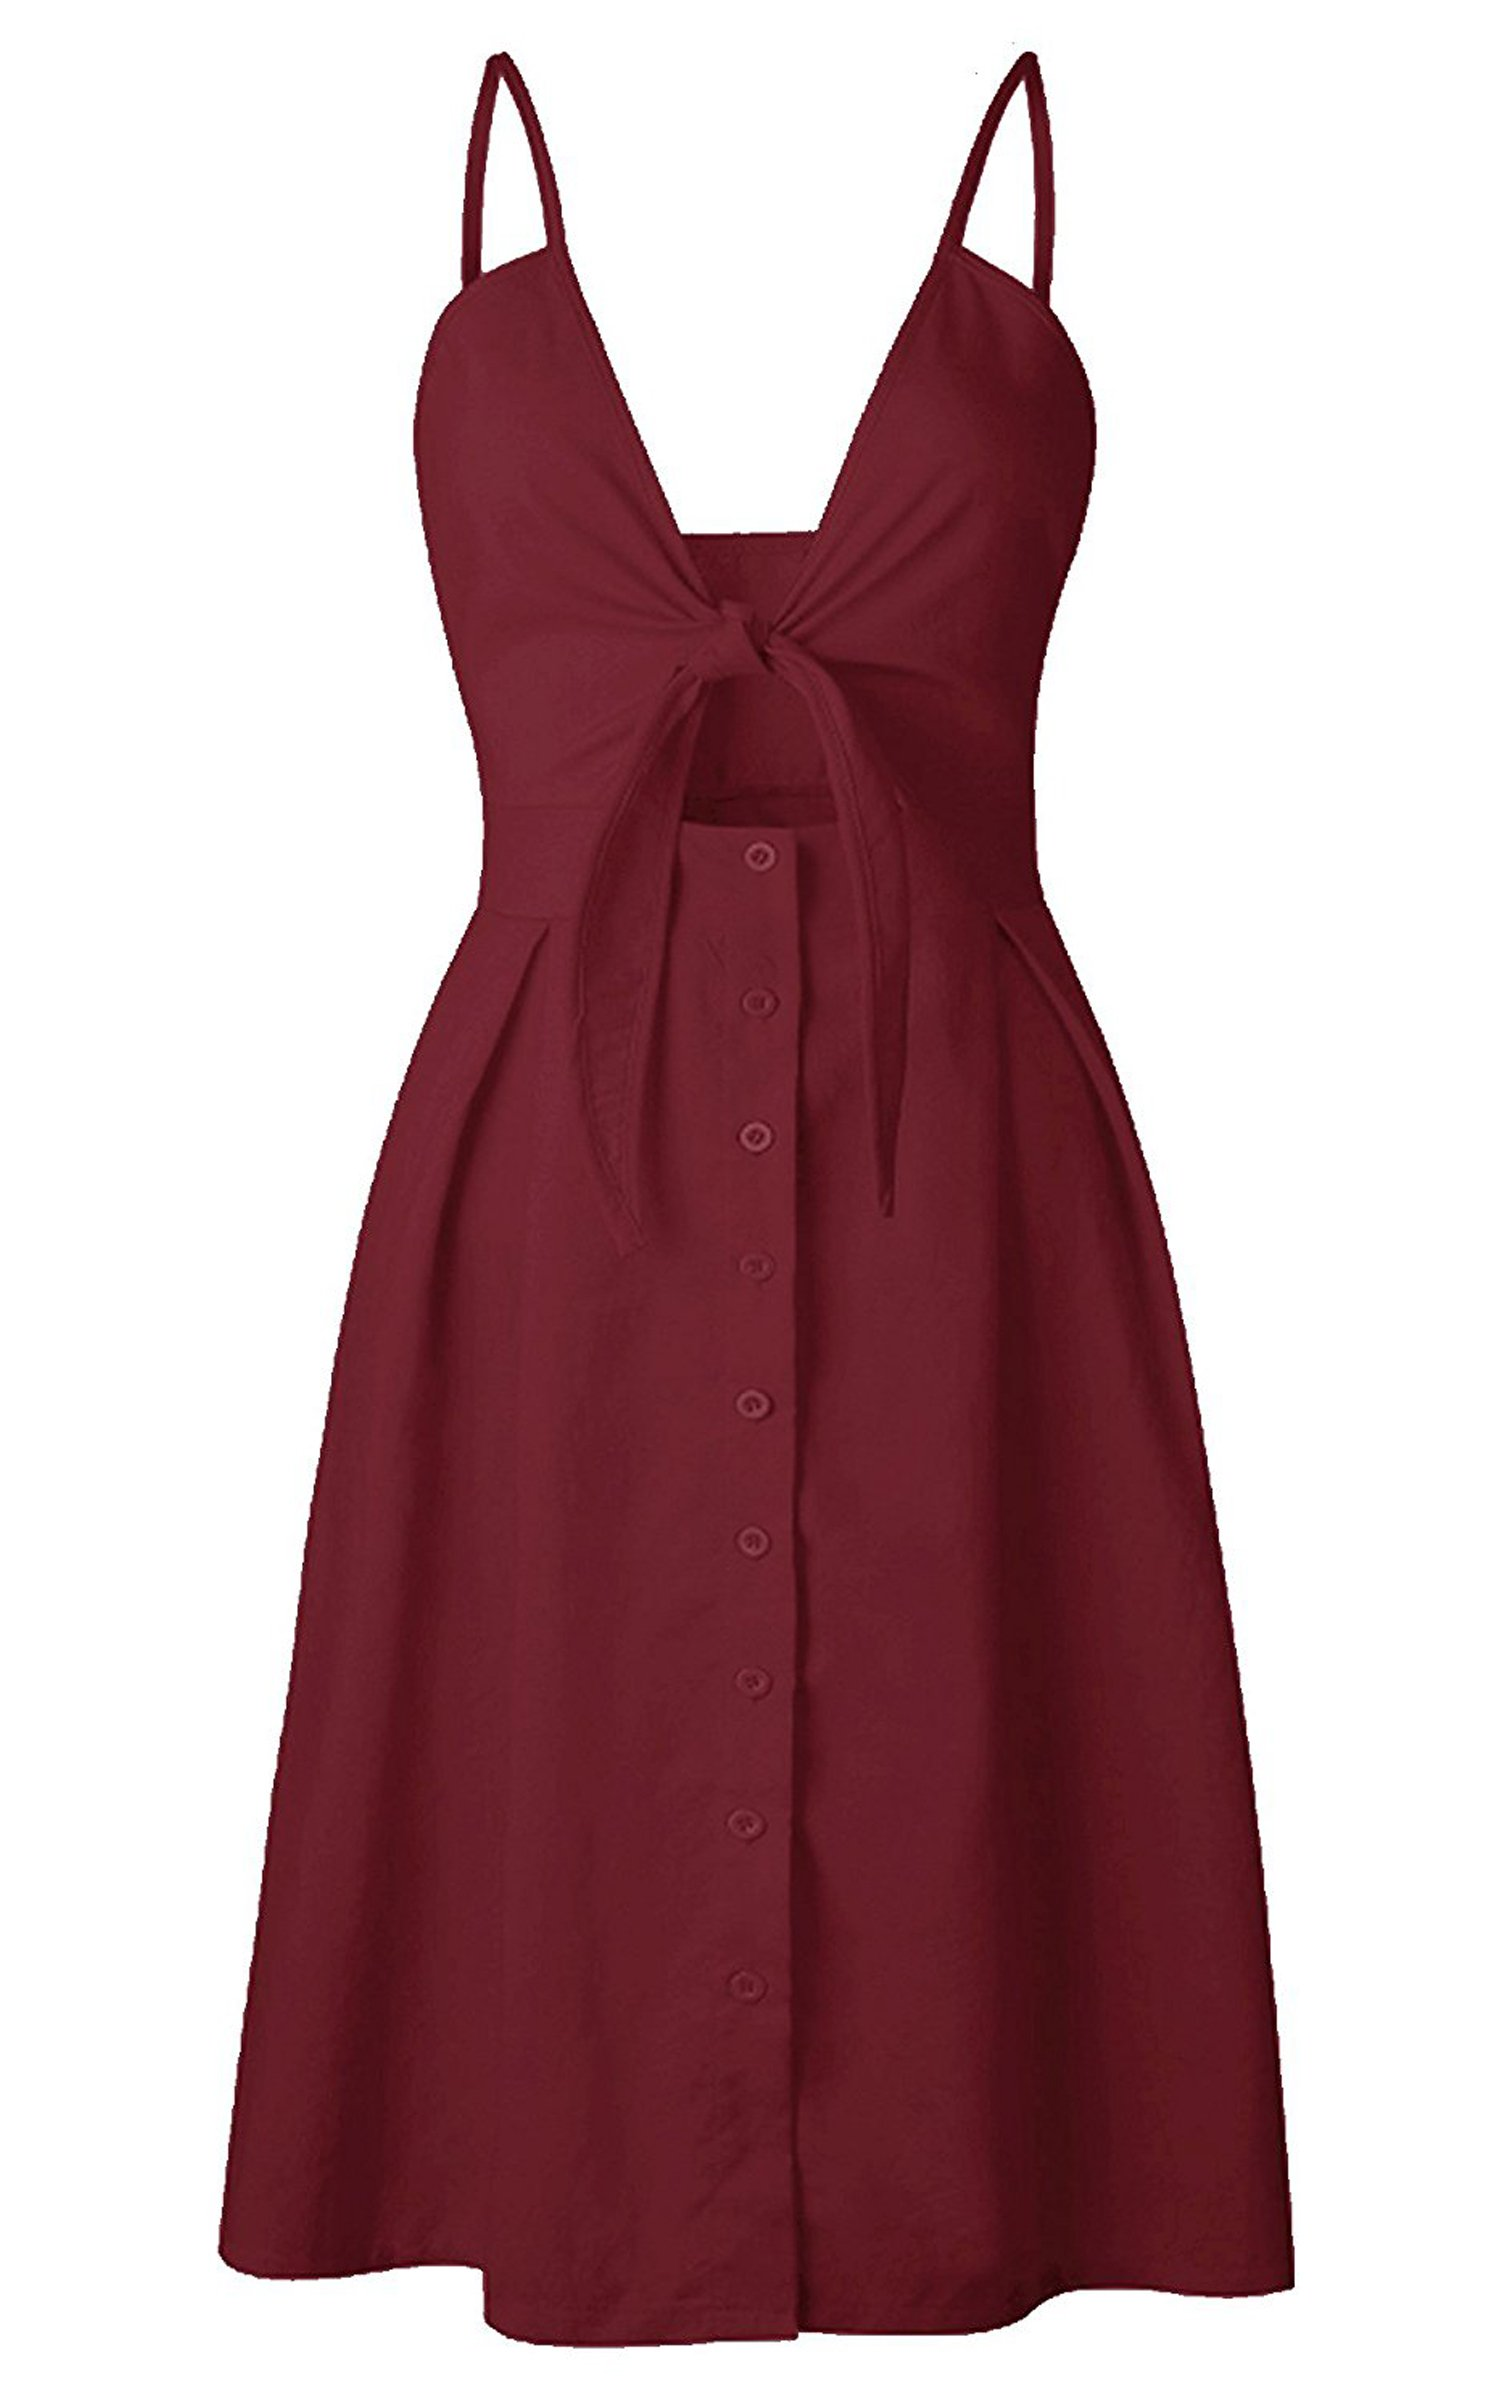 2e7150d241c ECOWISH Womens Dresses Summer Tie Front V-Neck Spaghetti Strap Button Down  A-Line Backless Swing Midi Dress Wine Red S - EH572 WR S   Casual   Clothing